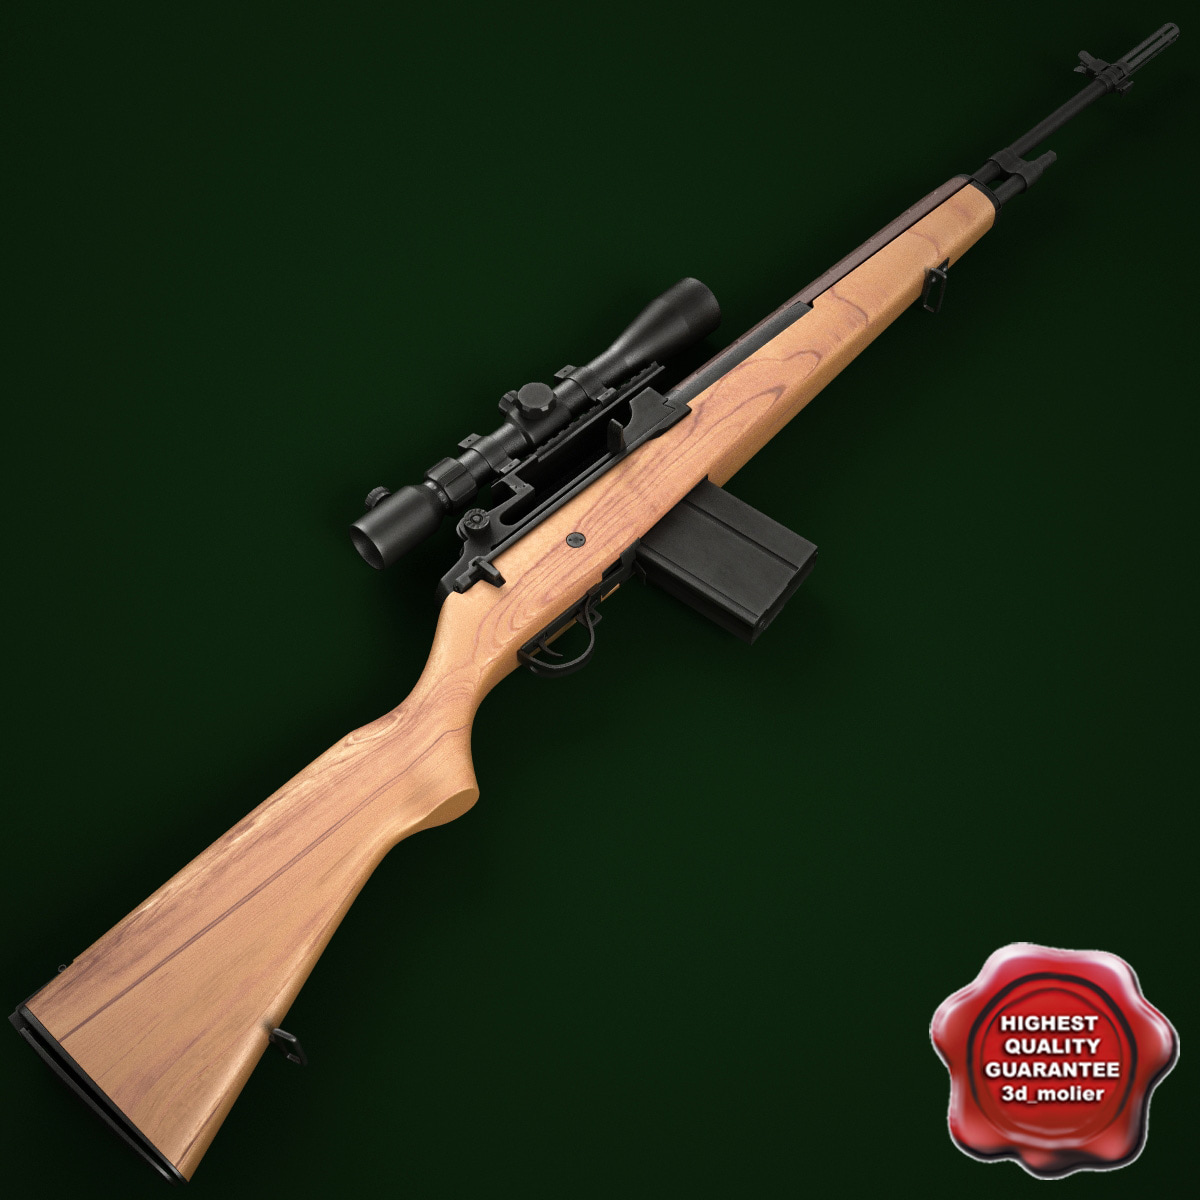 M14_Rifle_with_Optical_Scope_00.jpg